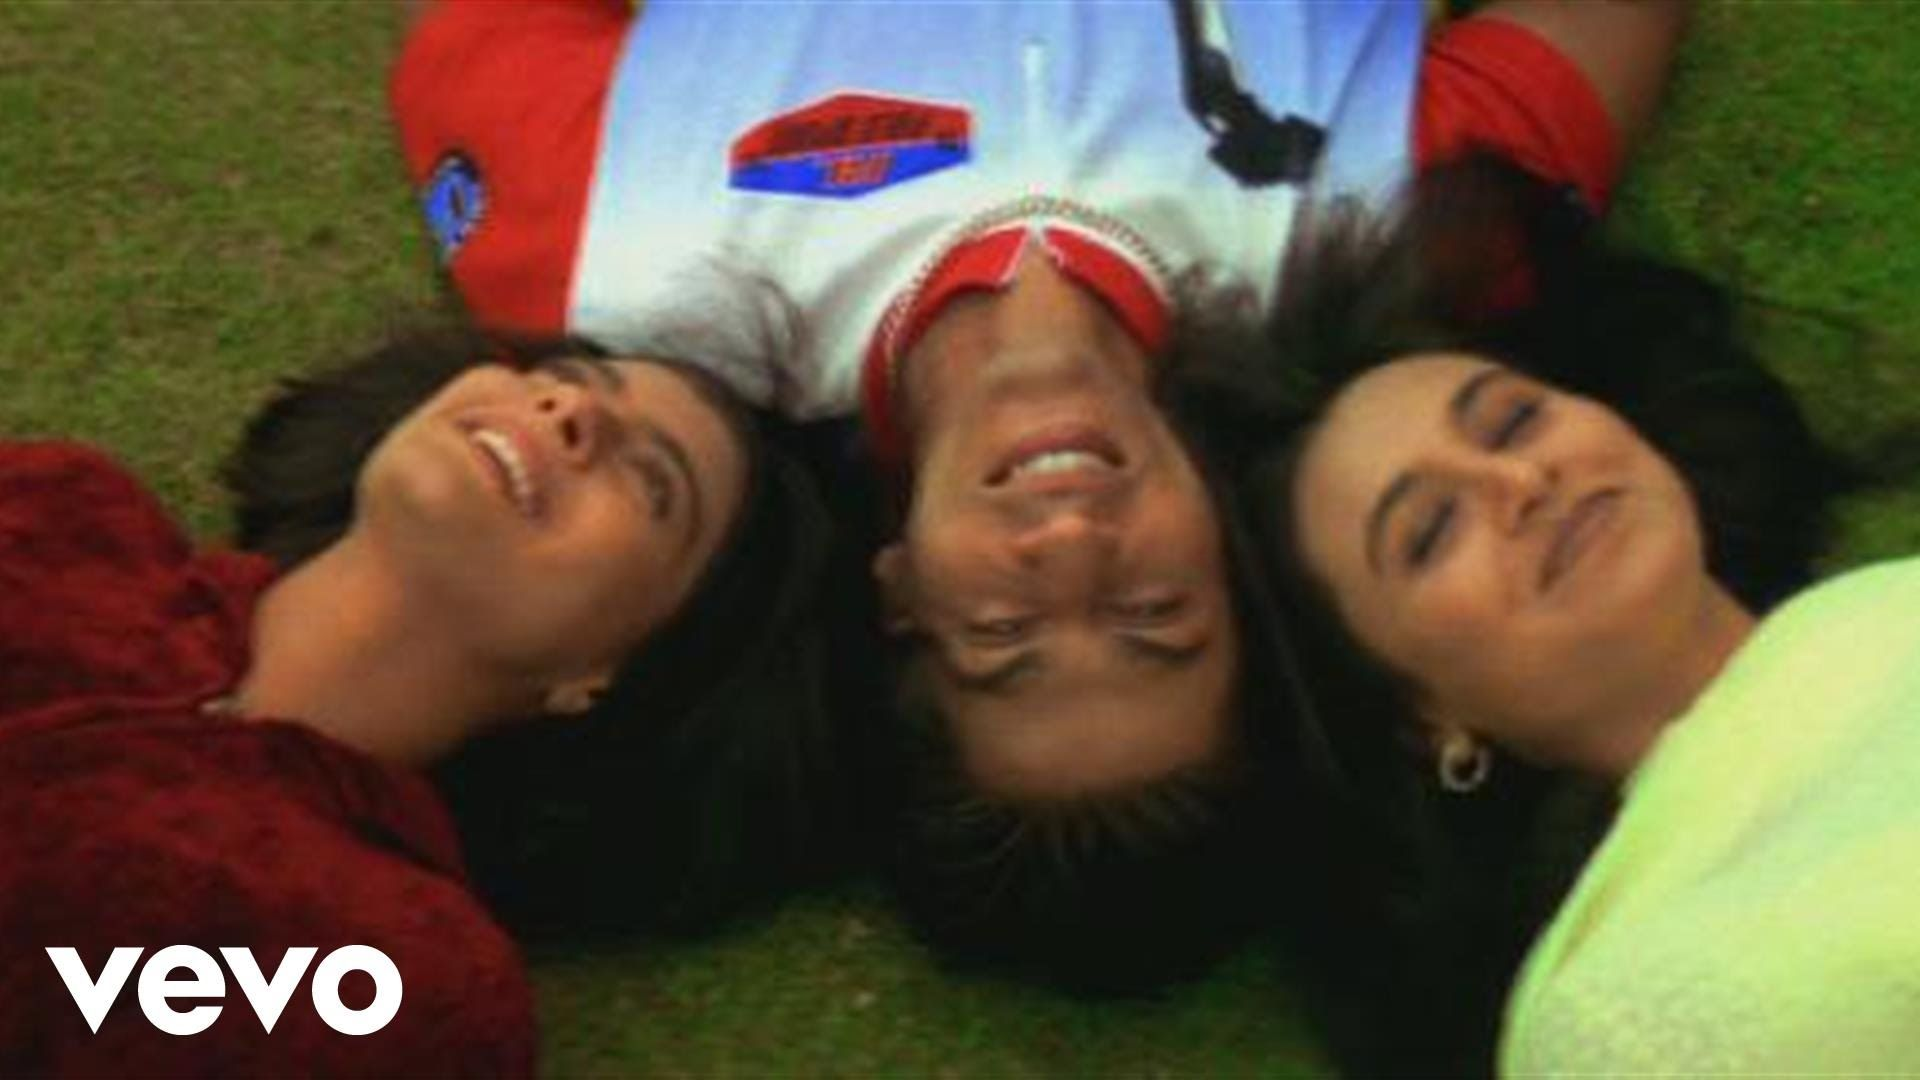 39 Kuch Kuch Hota Hai 39 Features The Voices Of Udit Narayan And Alka Yagnik And Is Picturised On T Udit Narayan Kuch Kuch Hota Hai Shahrukh Khan And Kajol